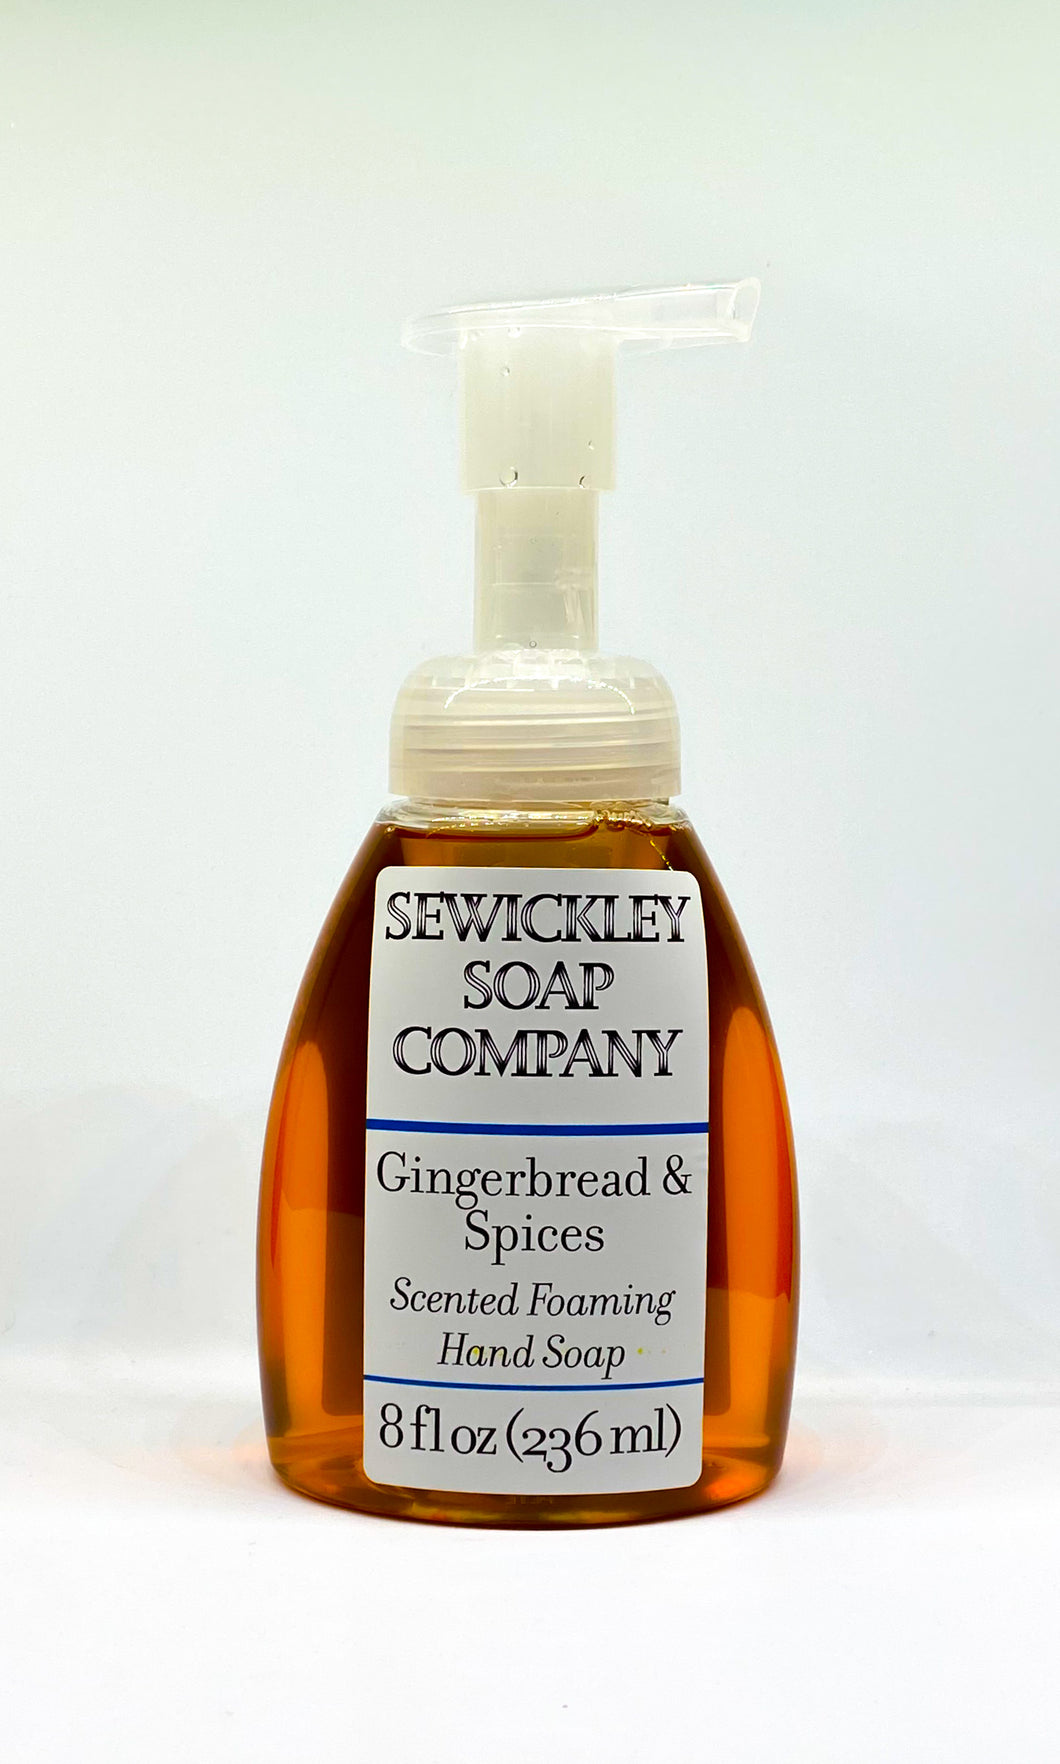 Gingerbread & Spices Foaming Hand Soap